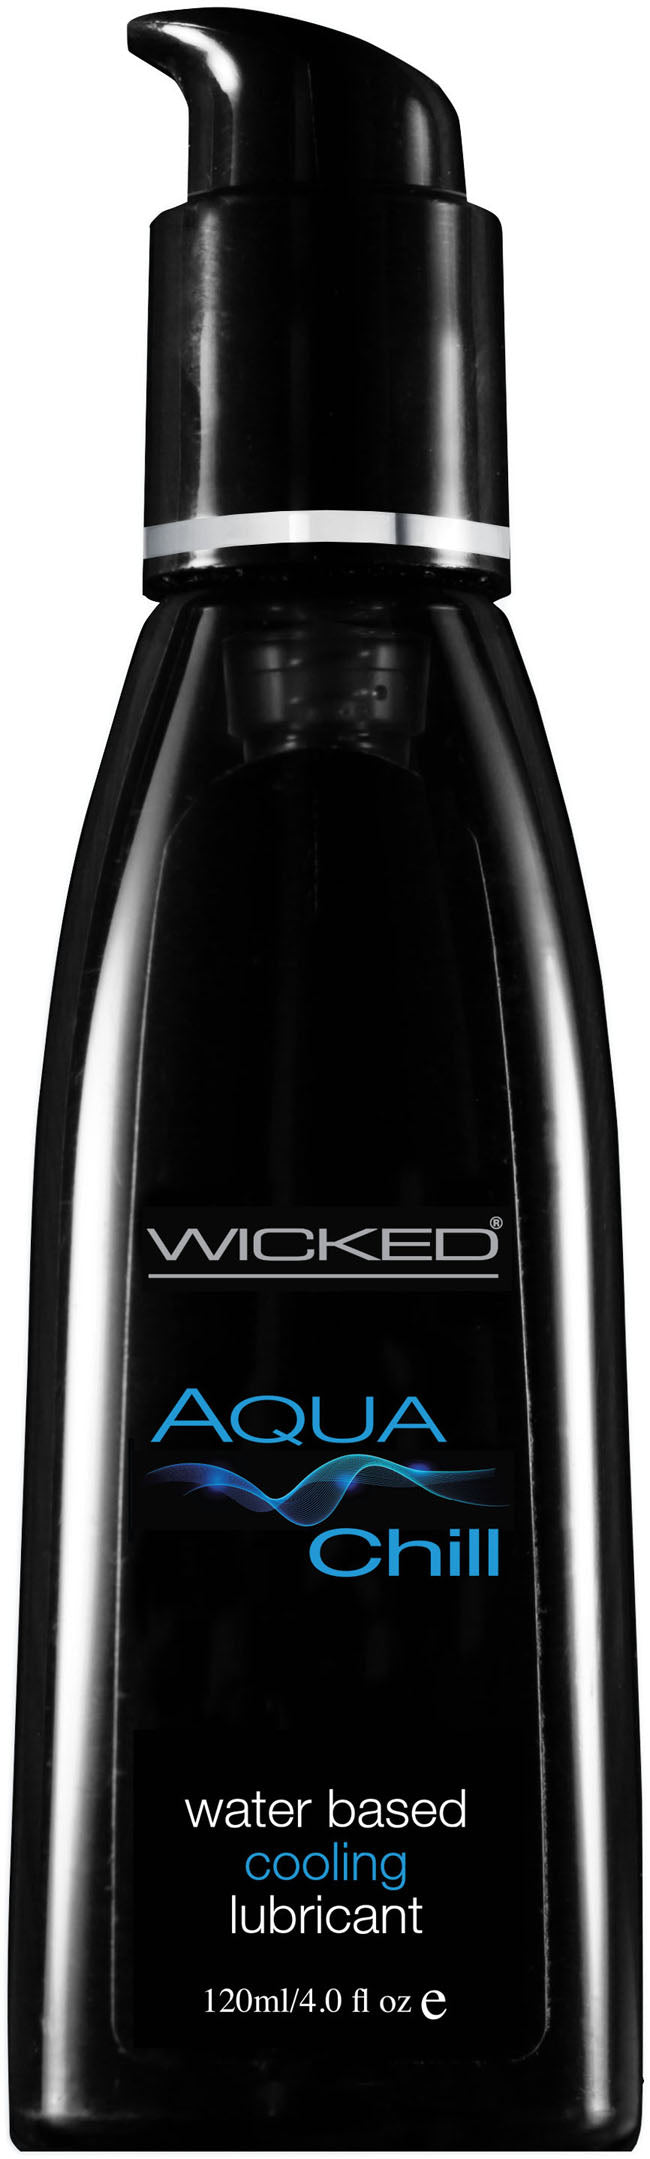 Wicked Aqua Chill Water Based Cooling Lubricant 4.0 Fl Oz. / 120 ml WS-90222